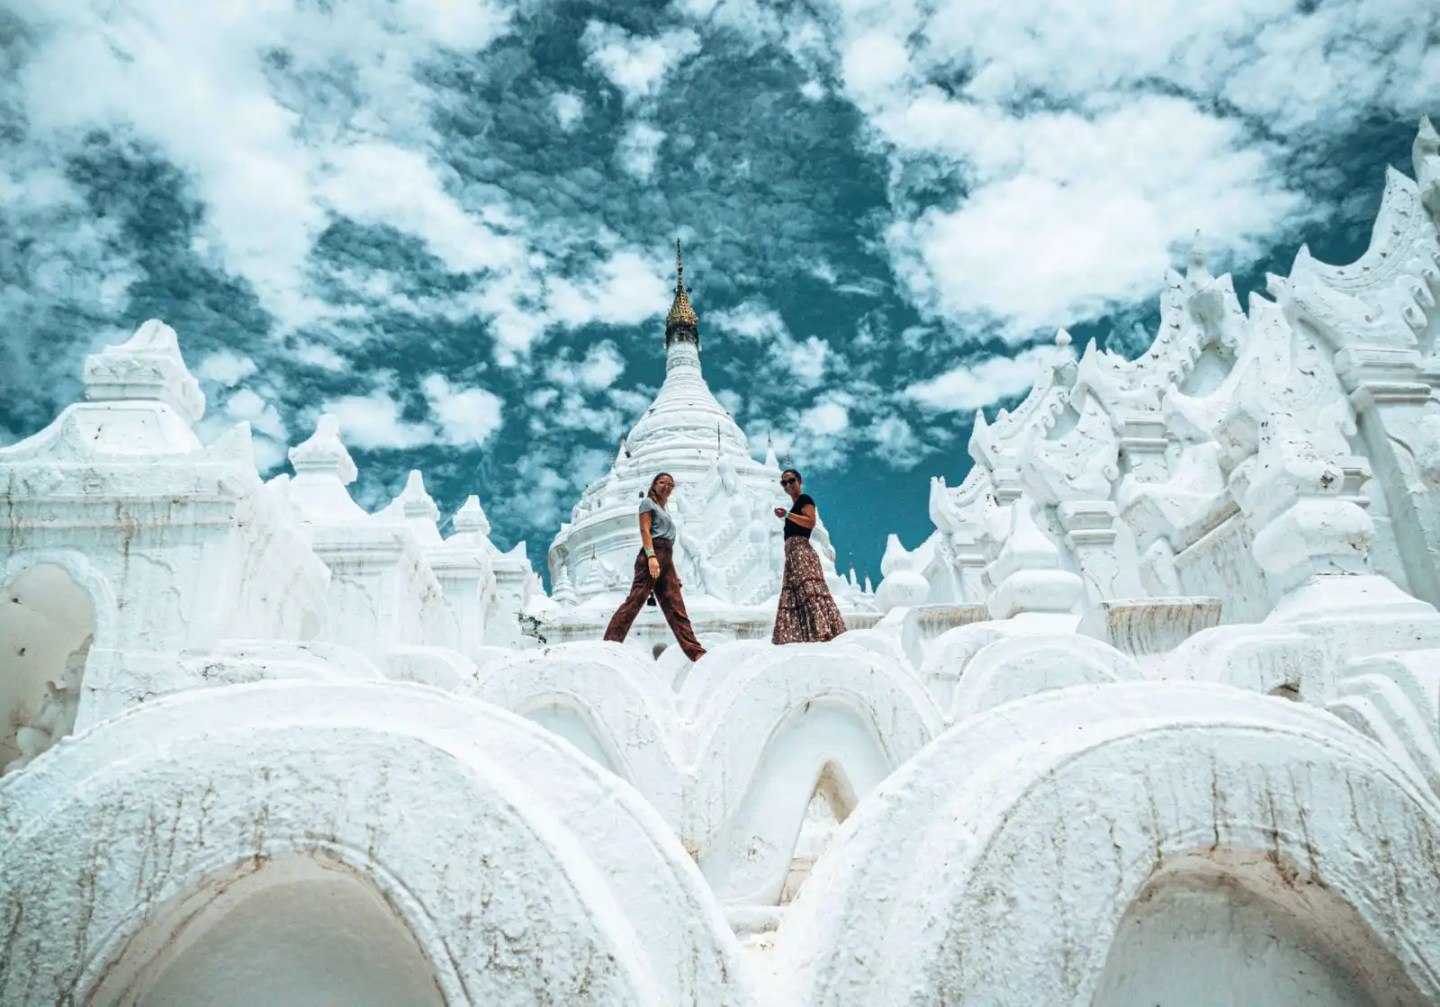 Picture of the white pagoda in Mingun, Mandalay